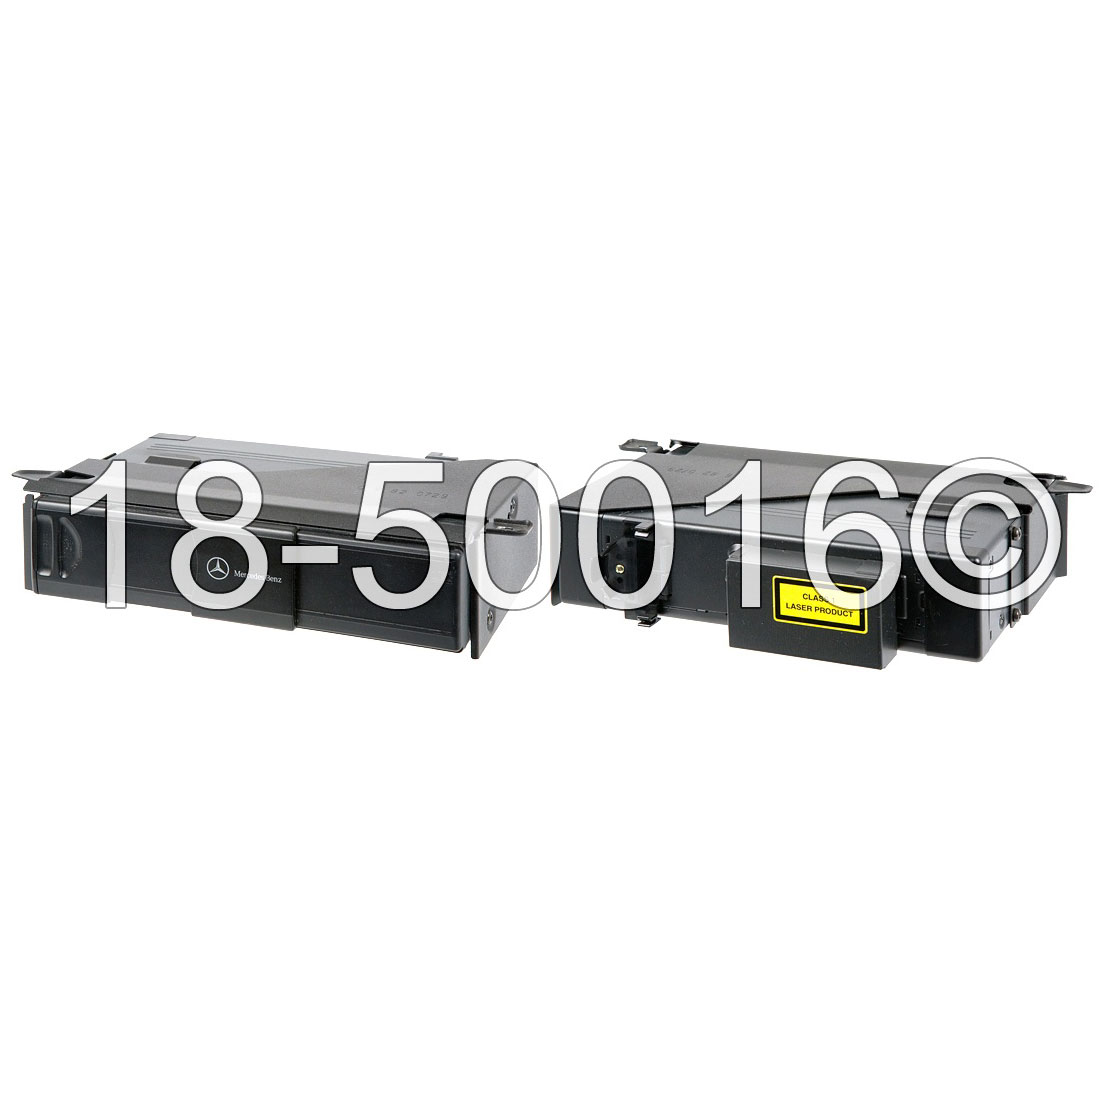 Mercedes_Benz CL500                          CD or DVD ChangerCD or DVD Changer